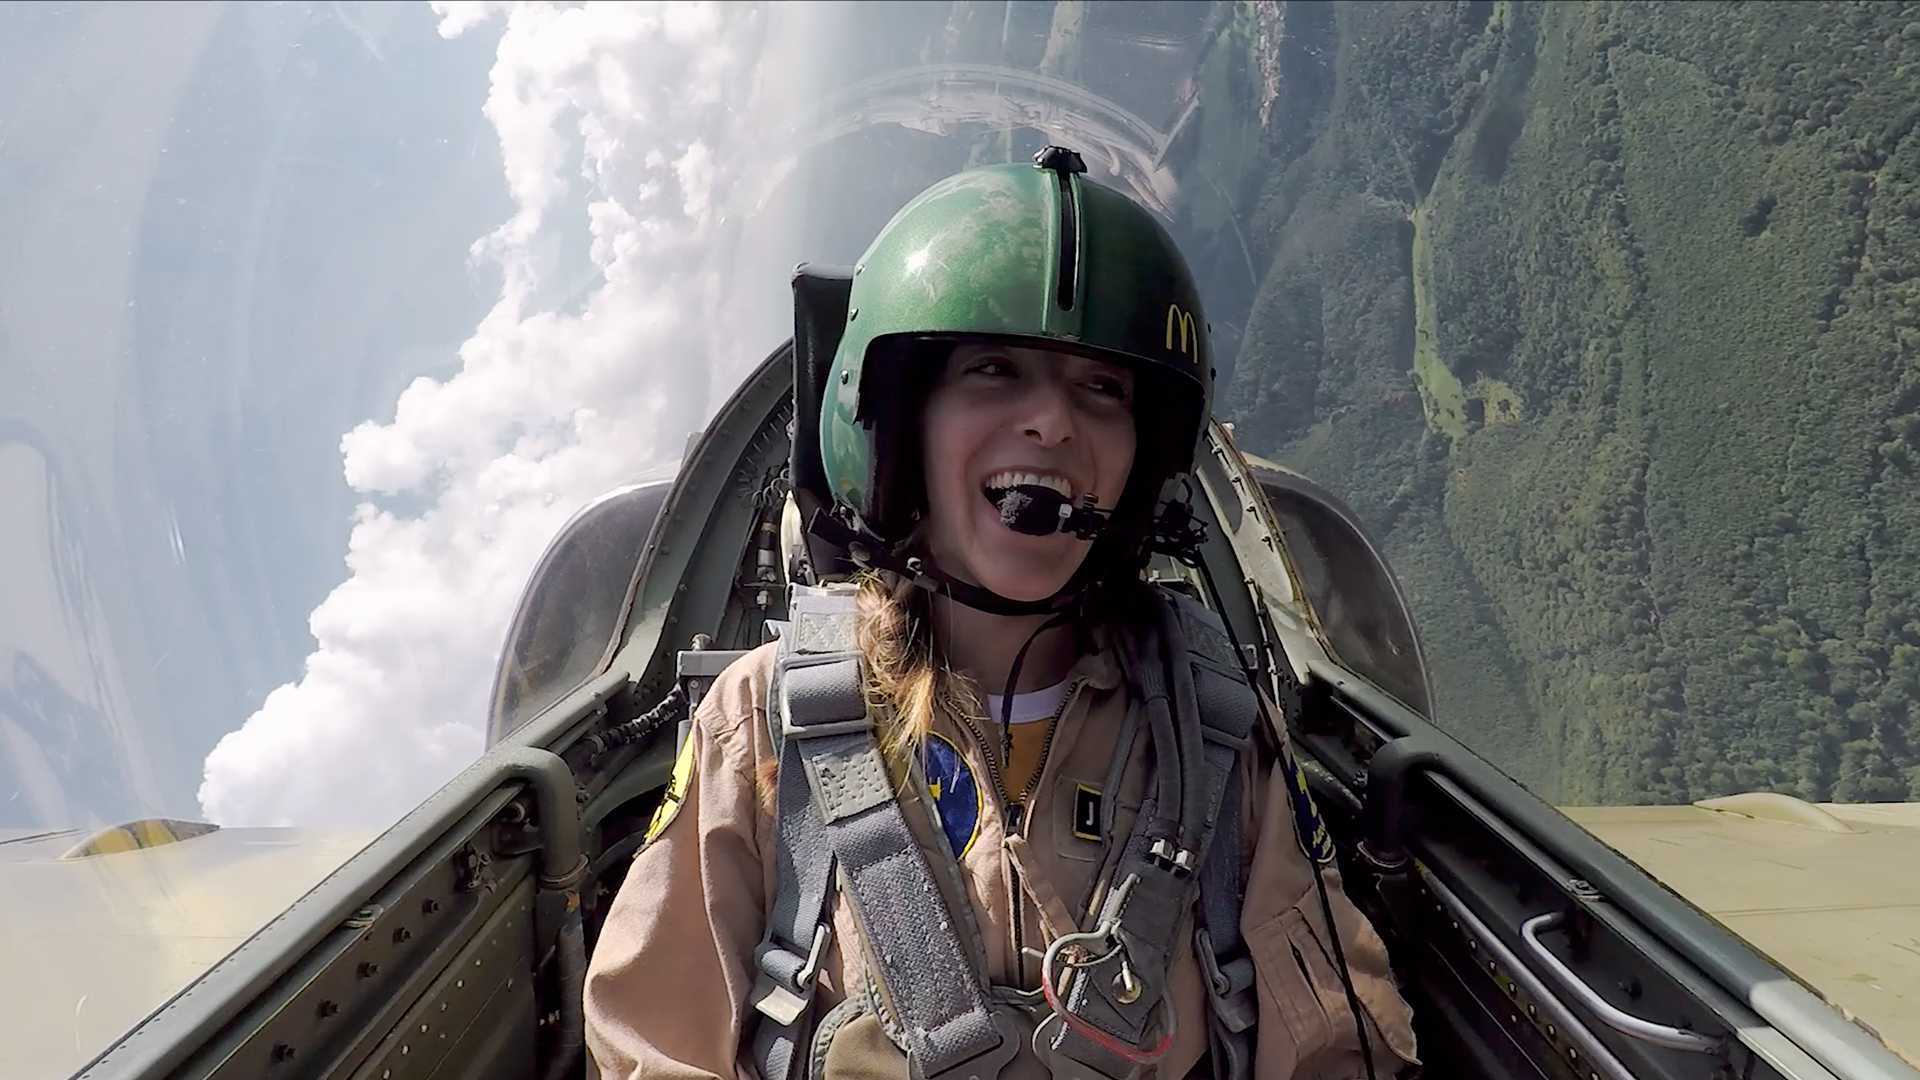 Am excited girl sitting inside a fighter jet, flying a curve above trees